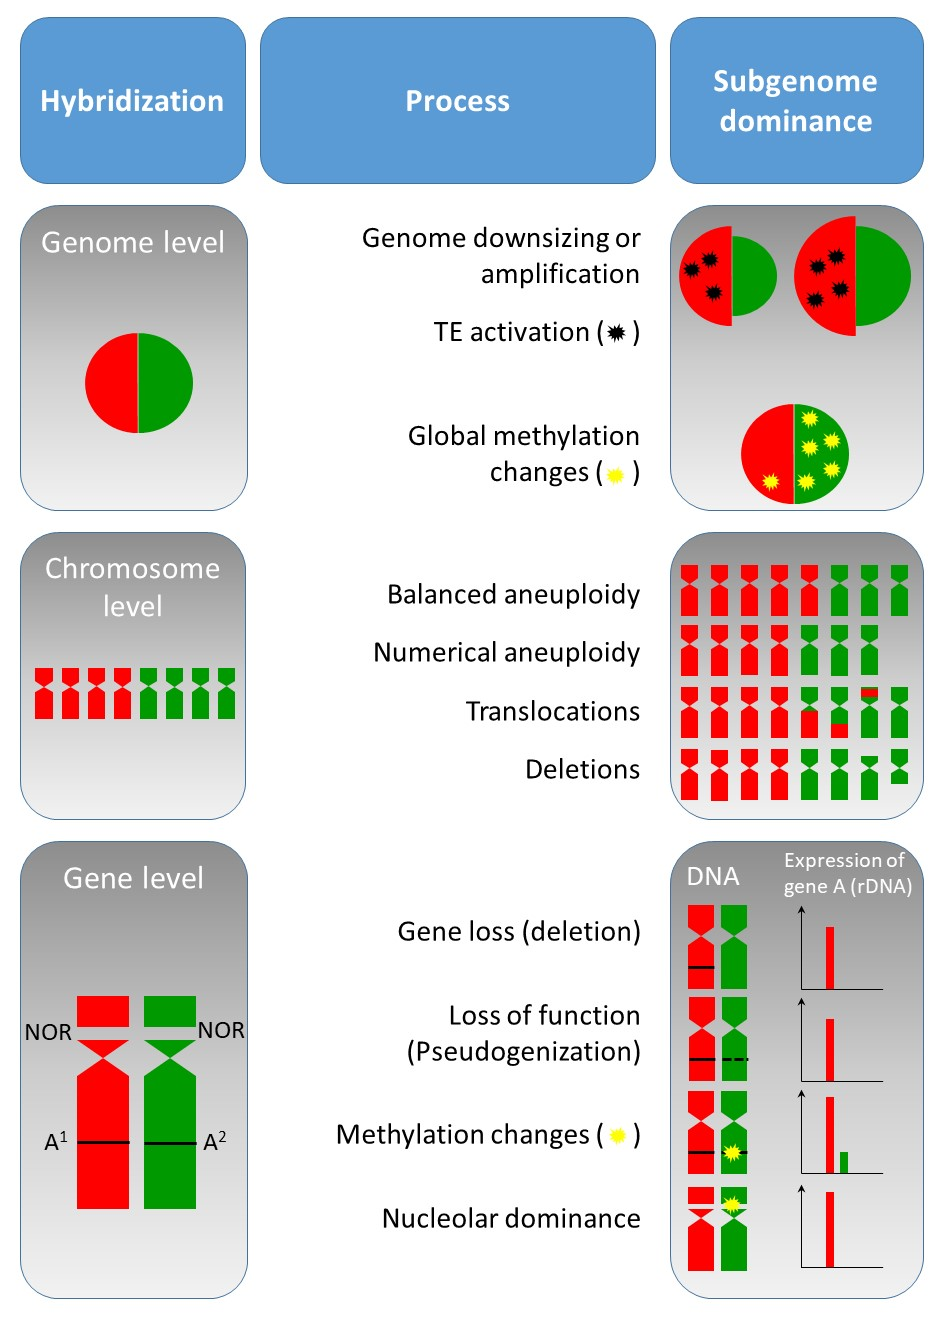 New publication: Competition of parental genomes in plant hybrids